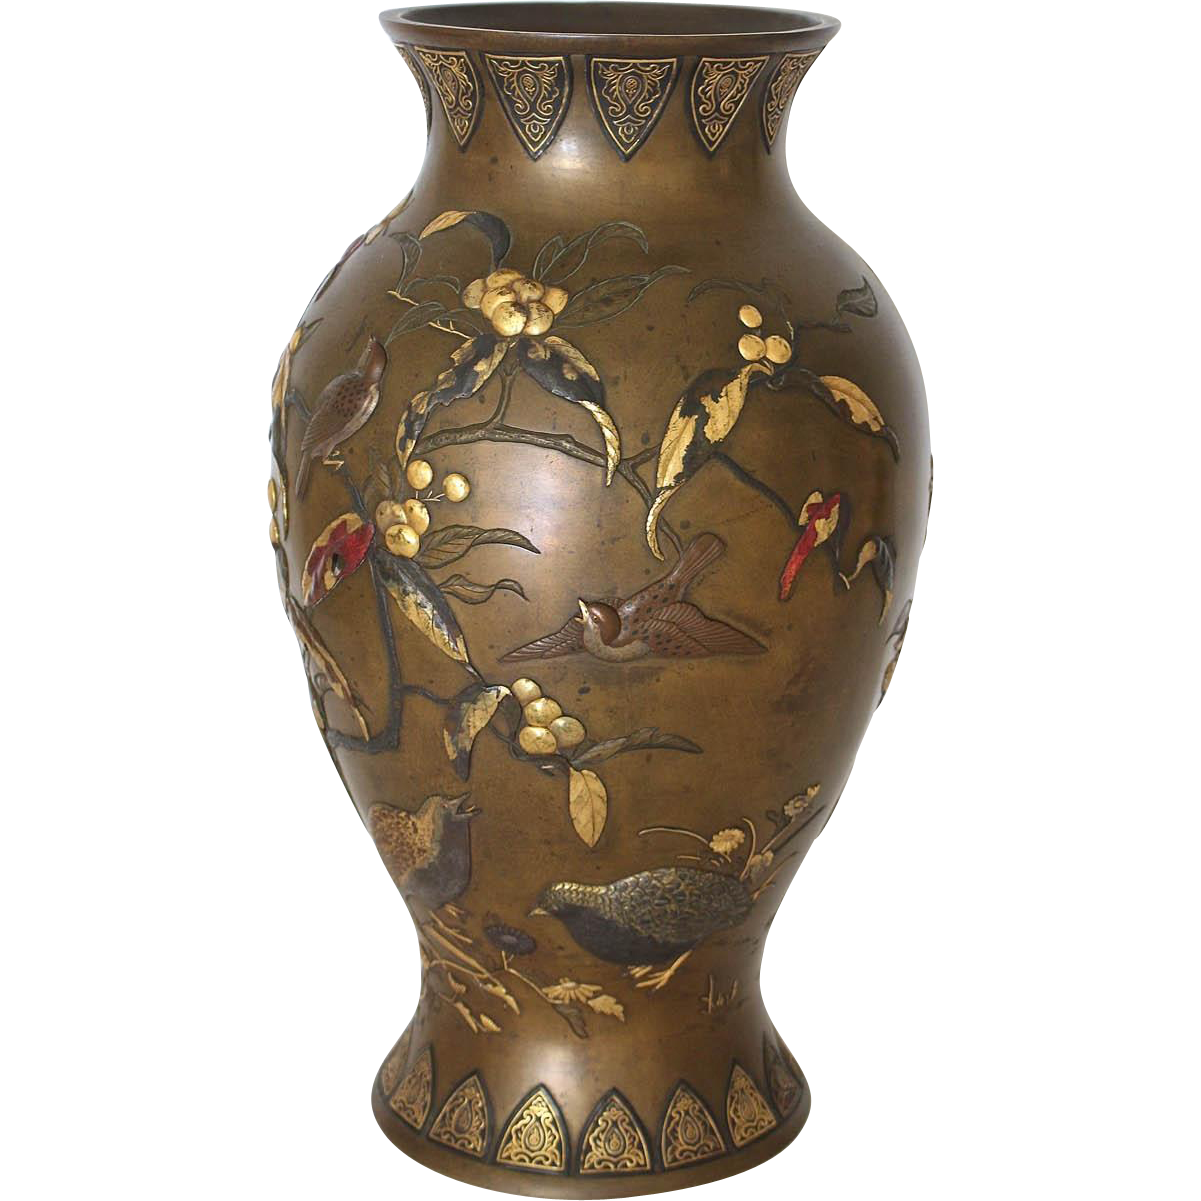 Magnificent Meiji Period Japanese Mixed Metal Bronze Vase From